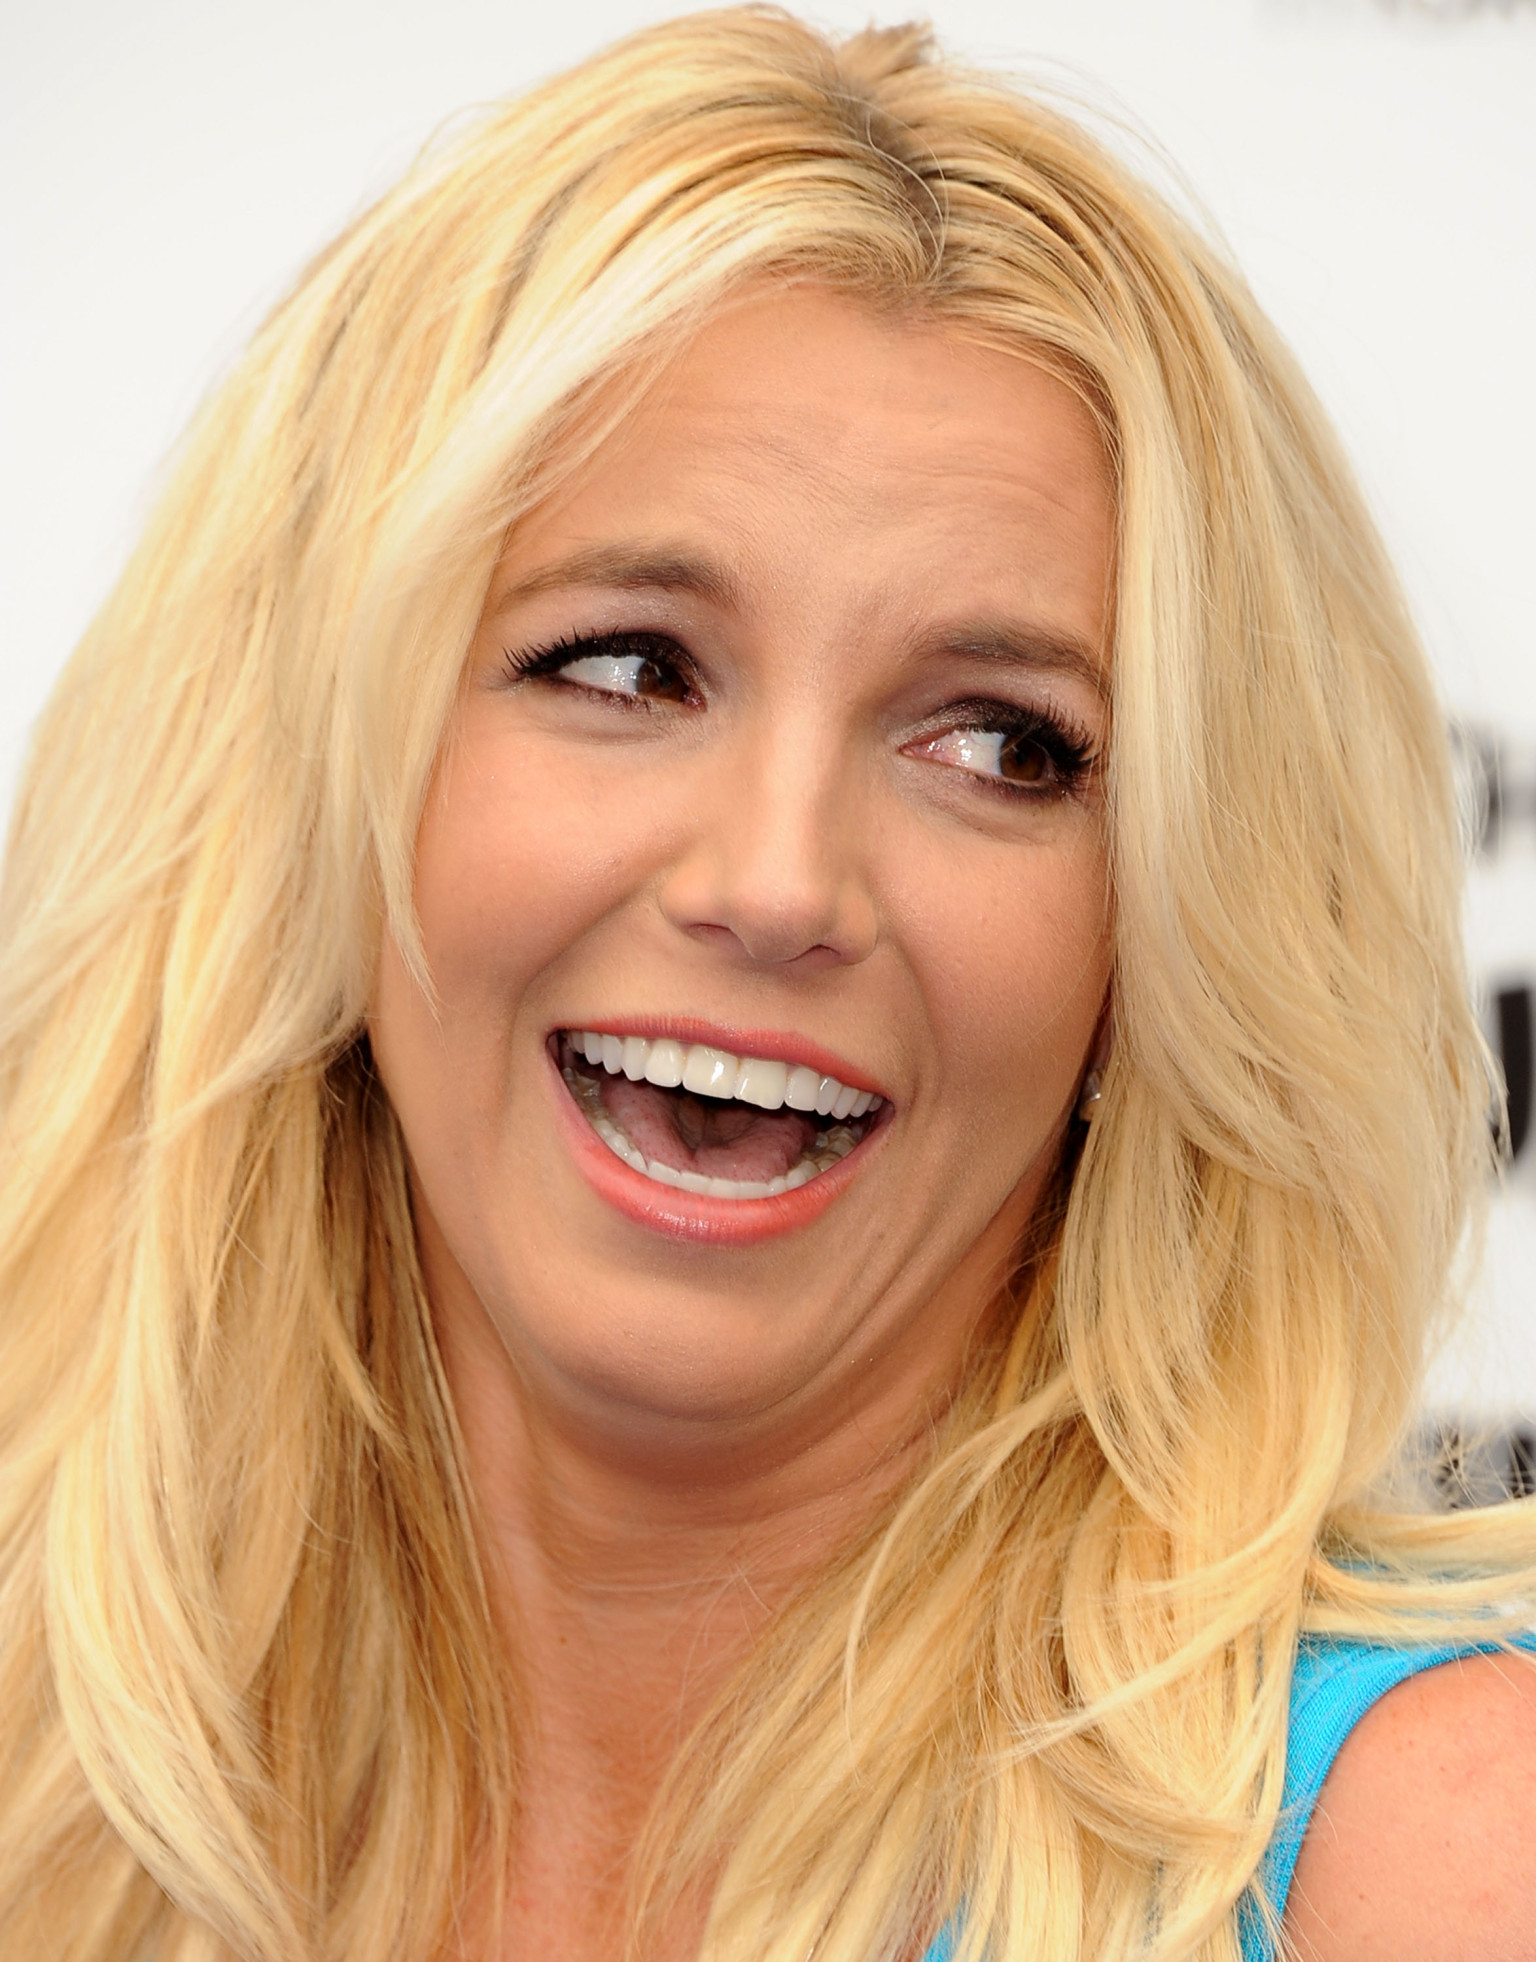 Britney Spears Is Beaming With New Puppy After Rehearsal